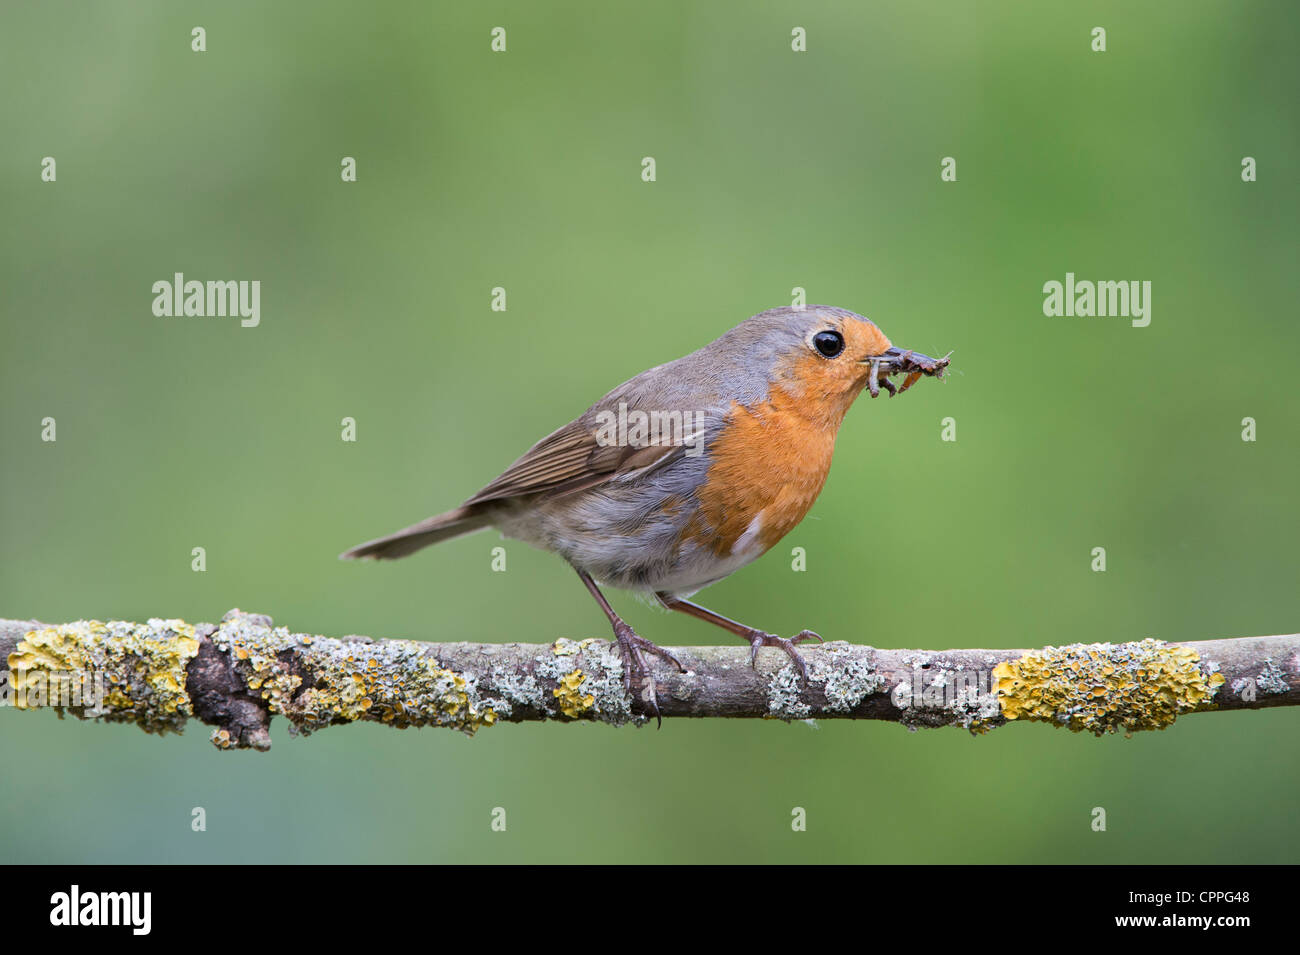 Robin perched on a branch with grubs in its beak - Stock Image